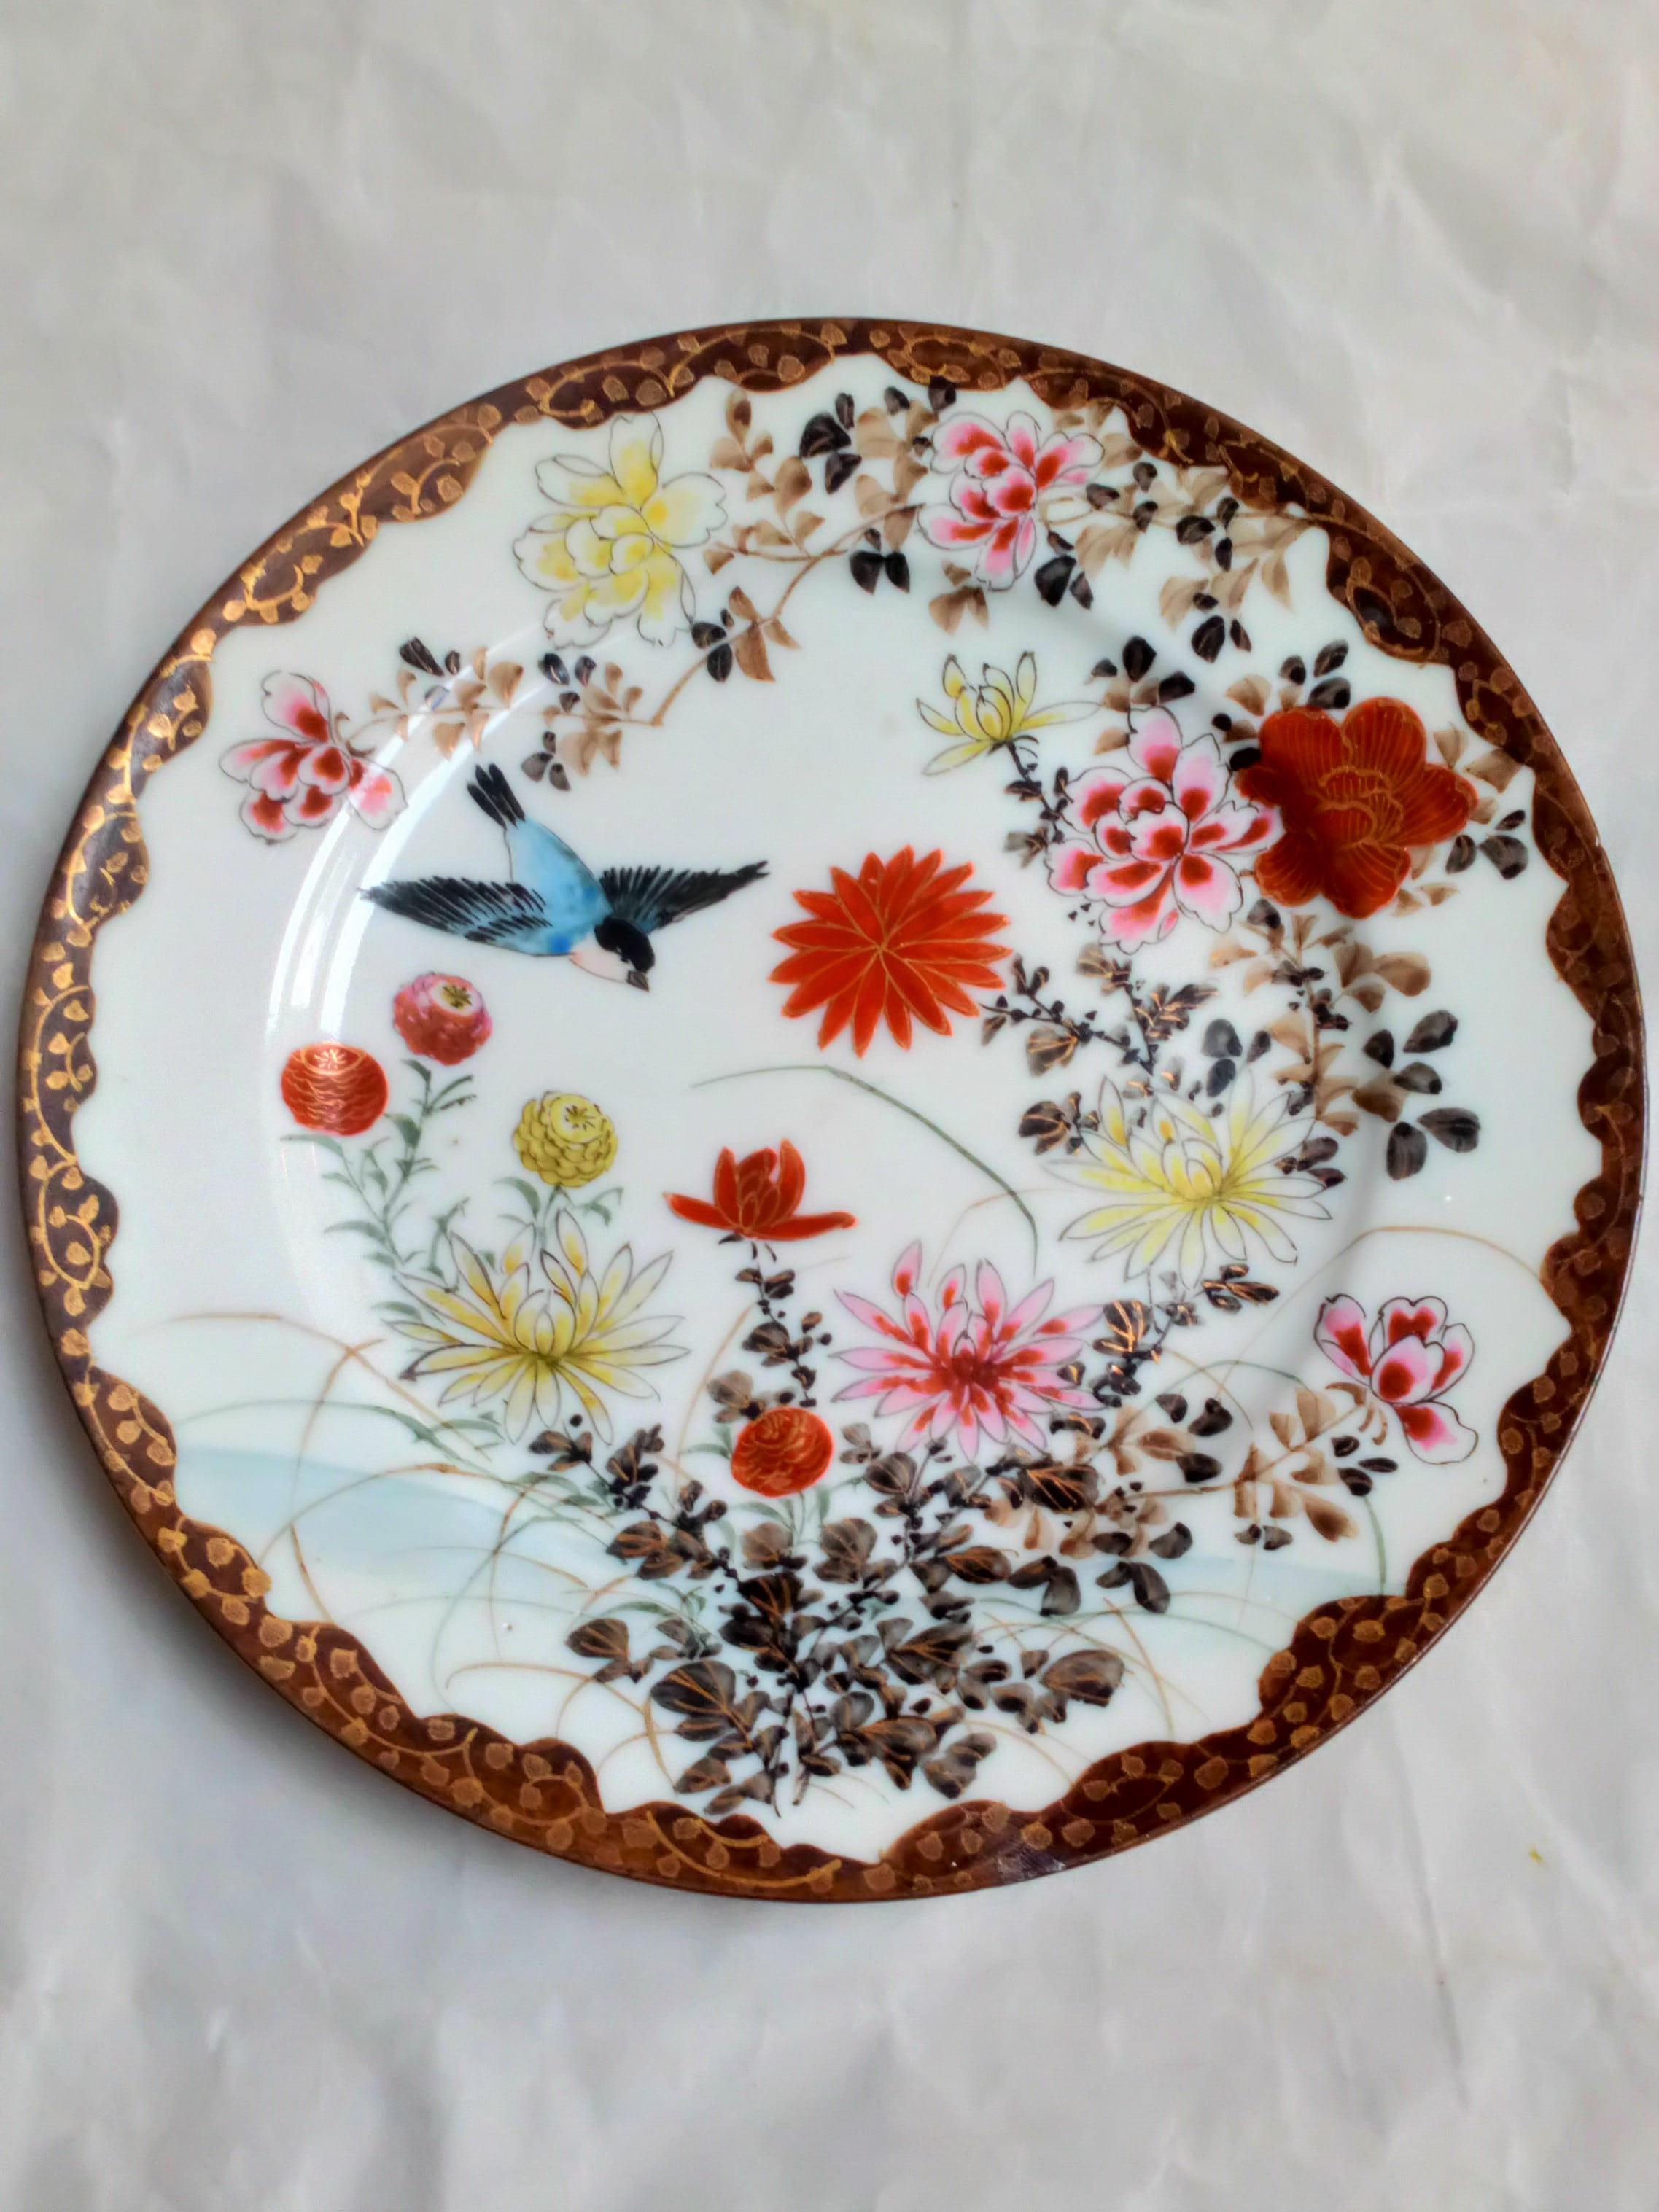 Antique Japanese Porcelain Plate Painted Birds and flowers marked 伊藤製 Ito sei  made by Ito from the Meiji circa 1900